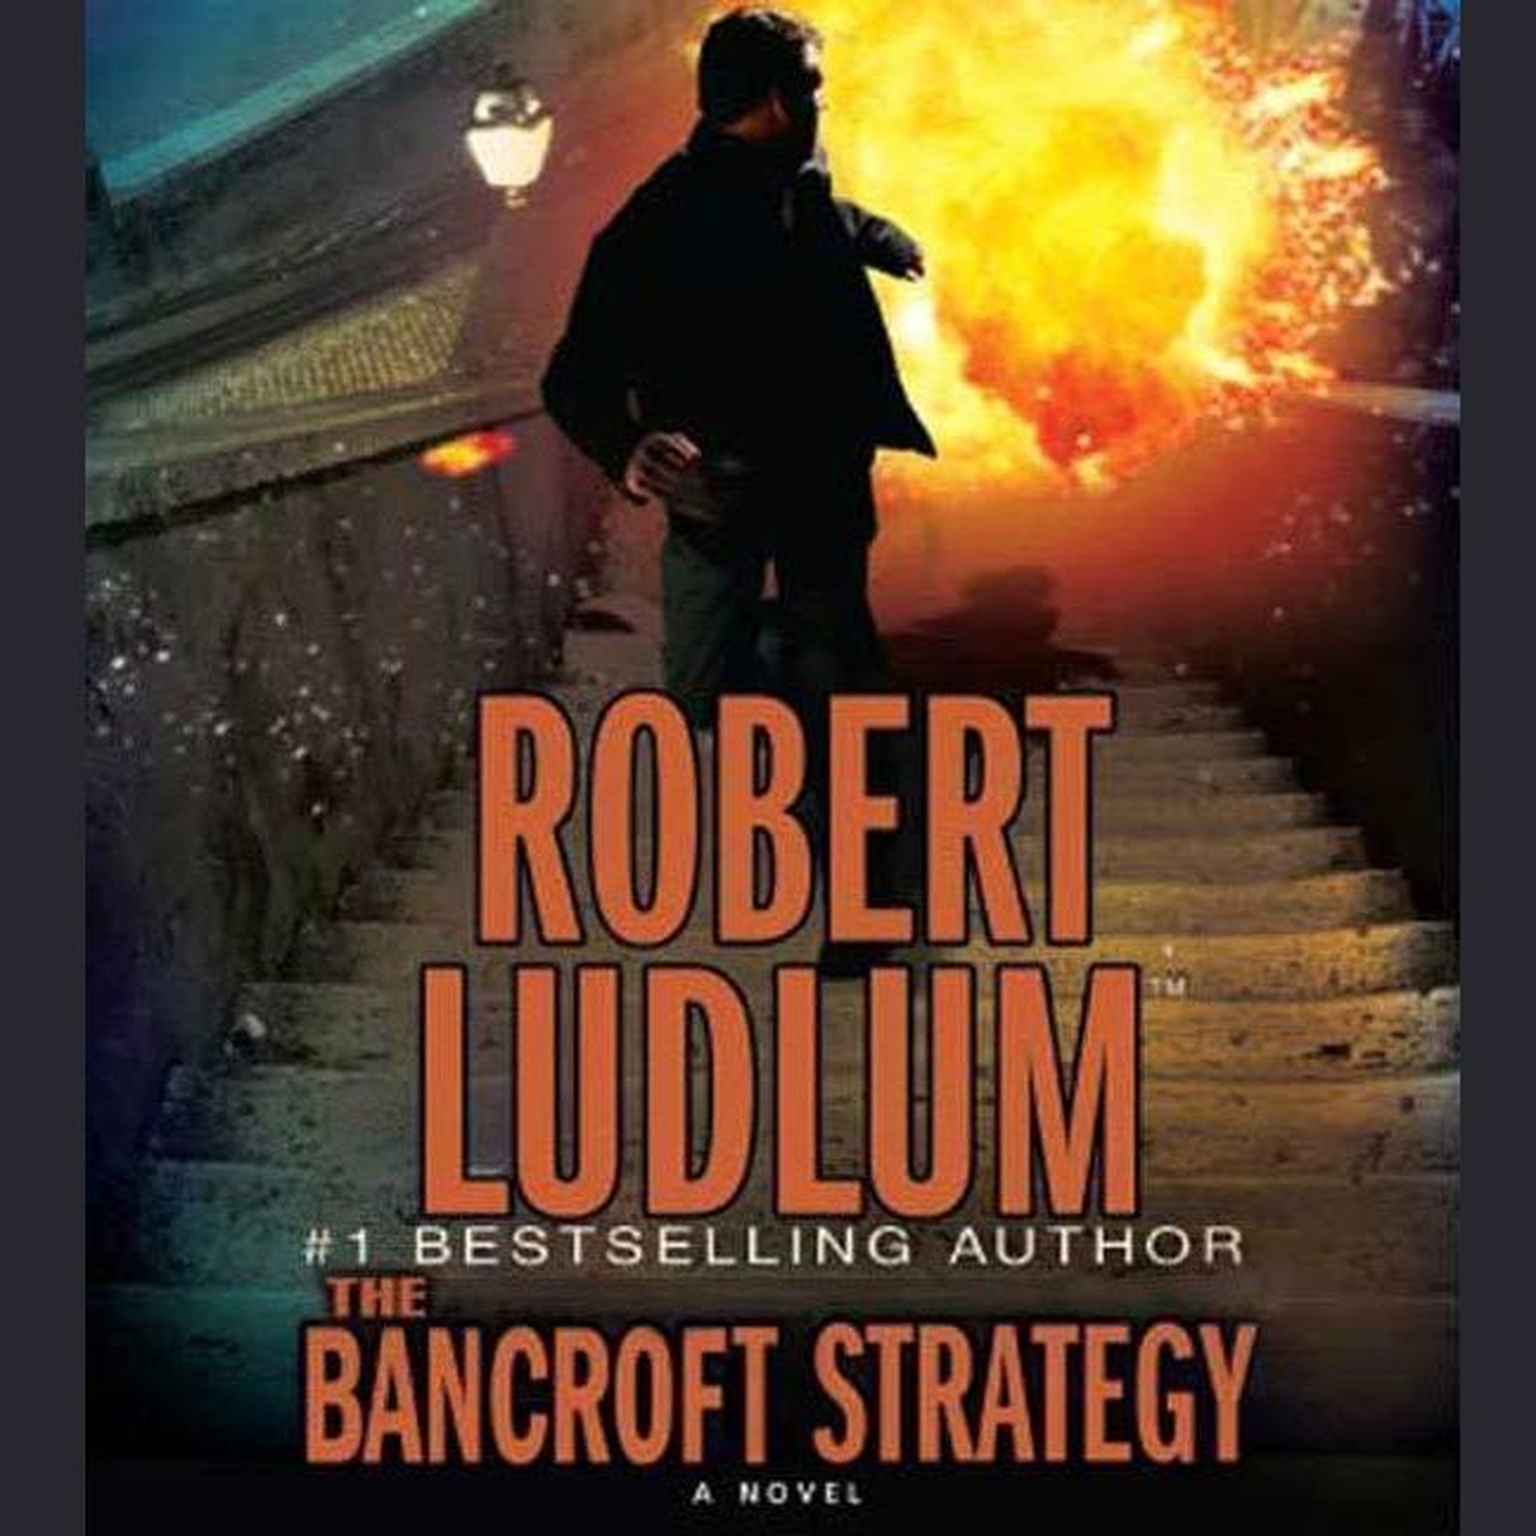 Printable The Bancroft Strategy: A Novel Audiobook Cover Art